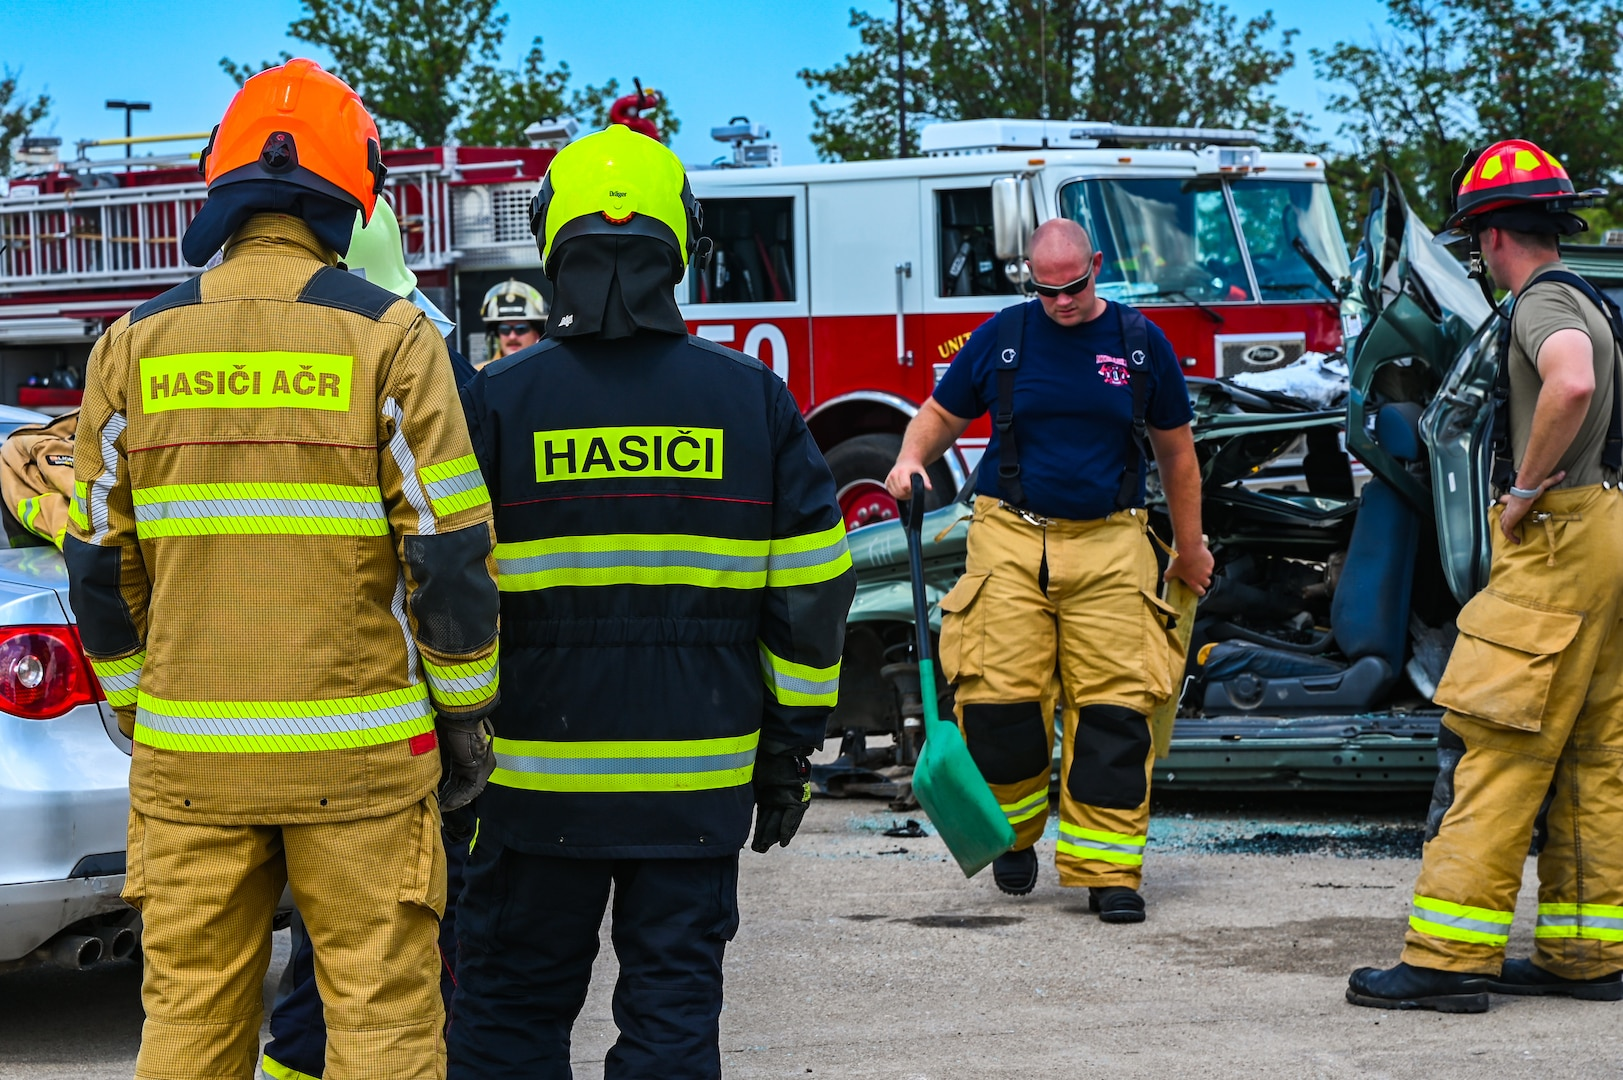 Firefighters from the Army of the Czech Republic perform car extrication tactics, Aug. 16, 2021, during a training exercise with the 155th Air Refueling Wing fire department at Lincoln Air Force Base, Neb. This Nebraska National Guard and Czech Republic armed forces training exchange is one of many facilitated by the National Guard's State Partnership Program.